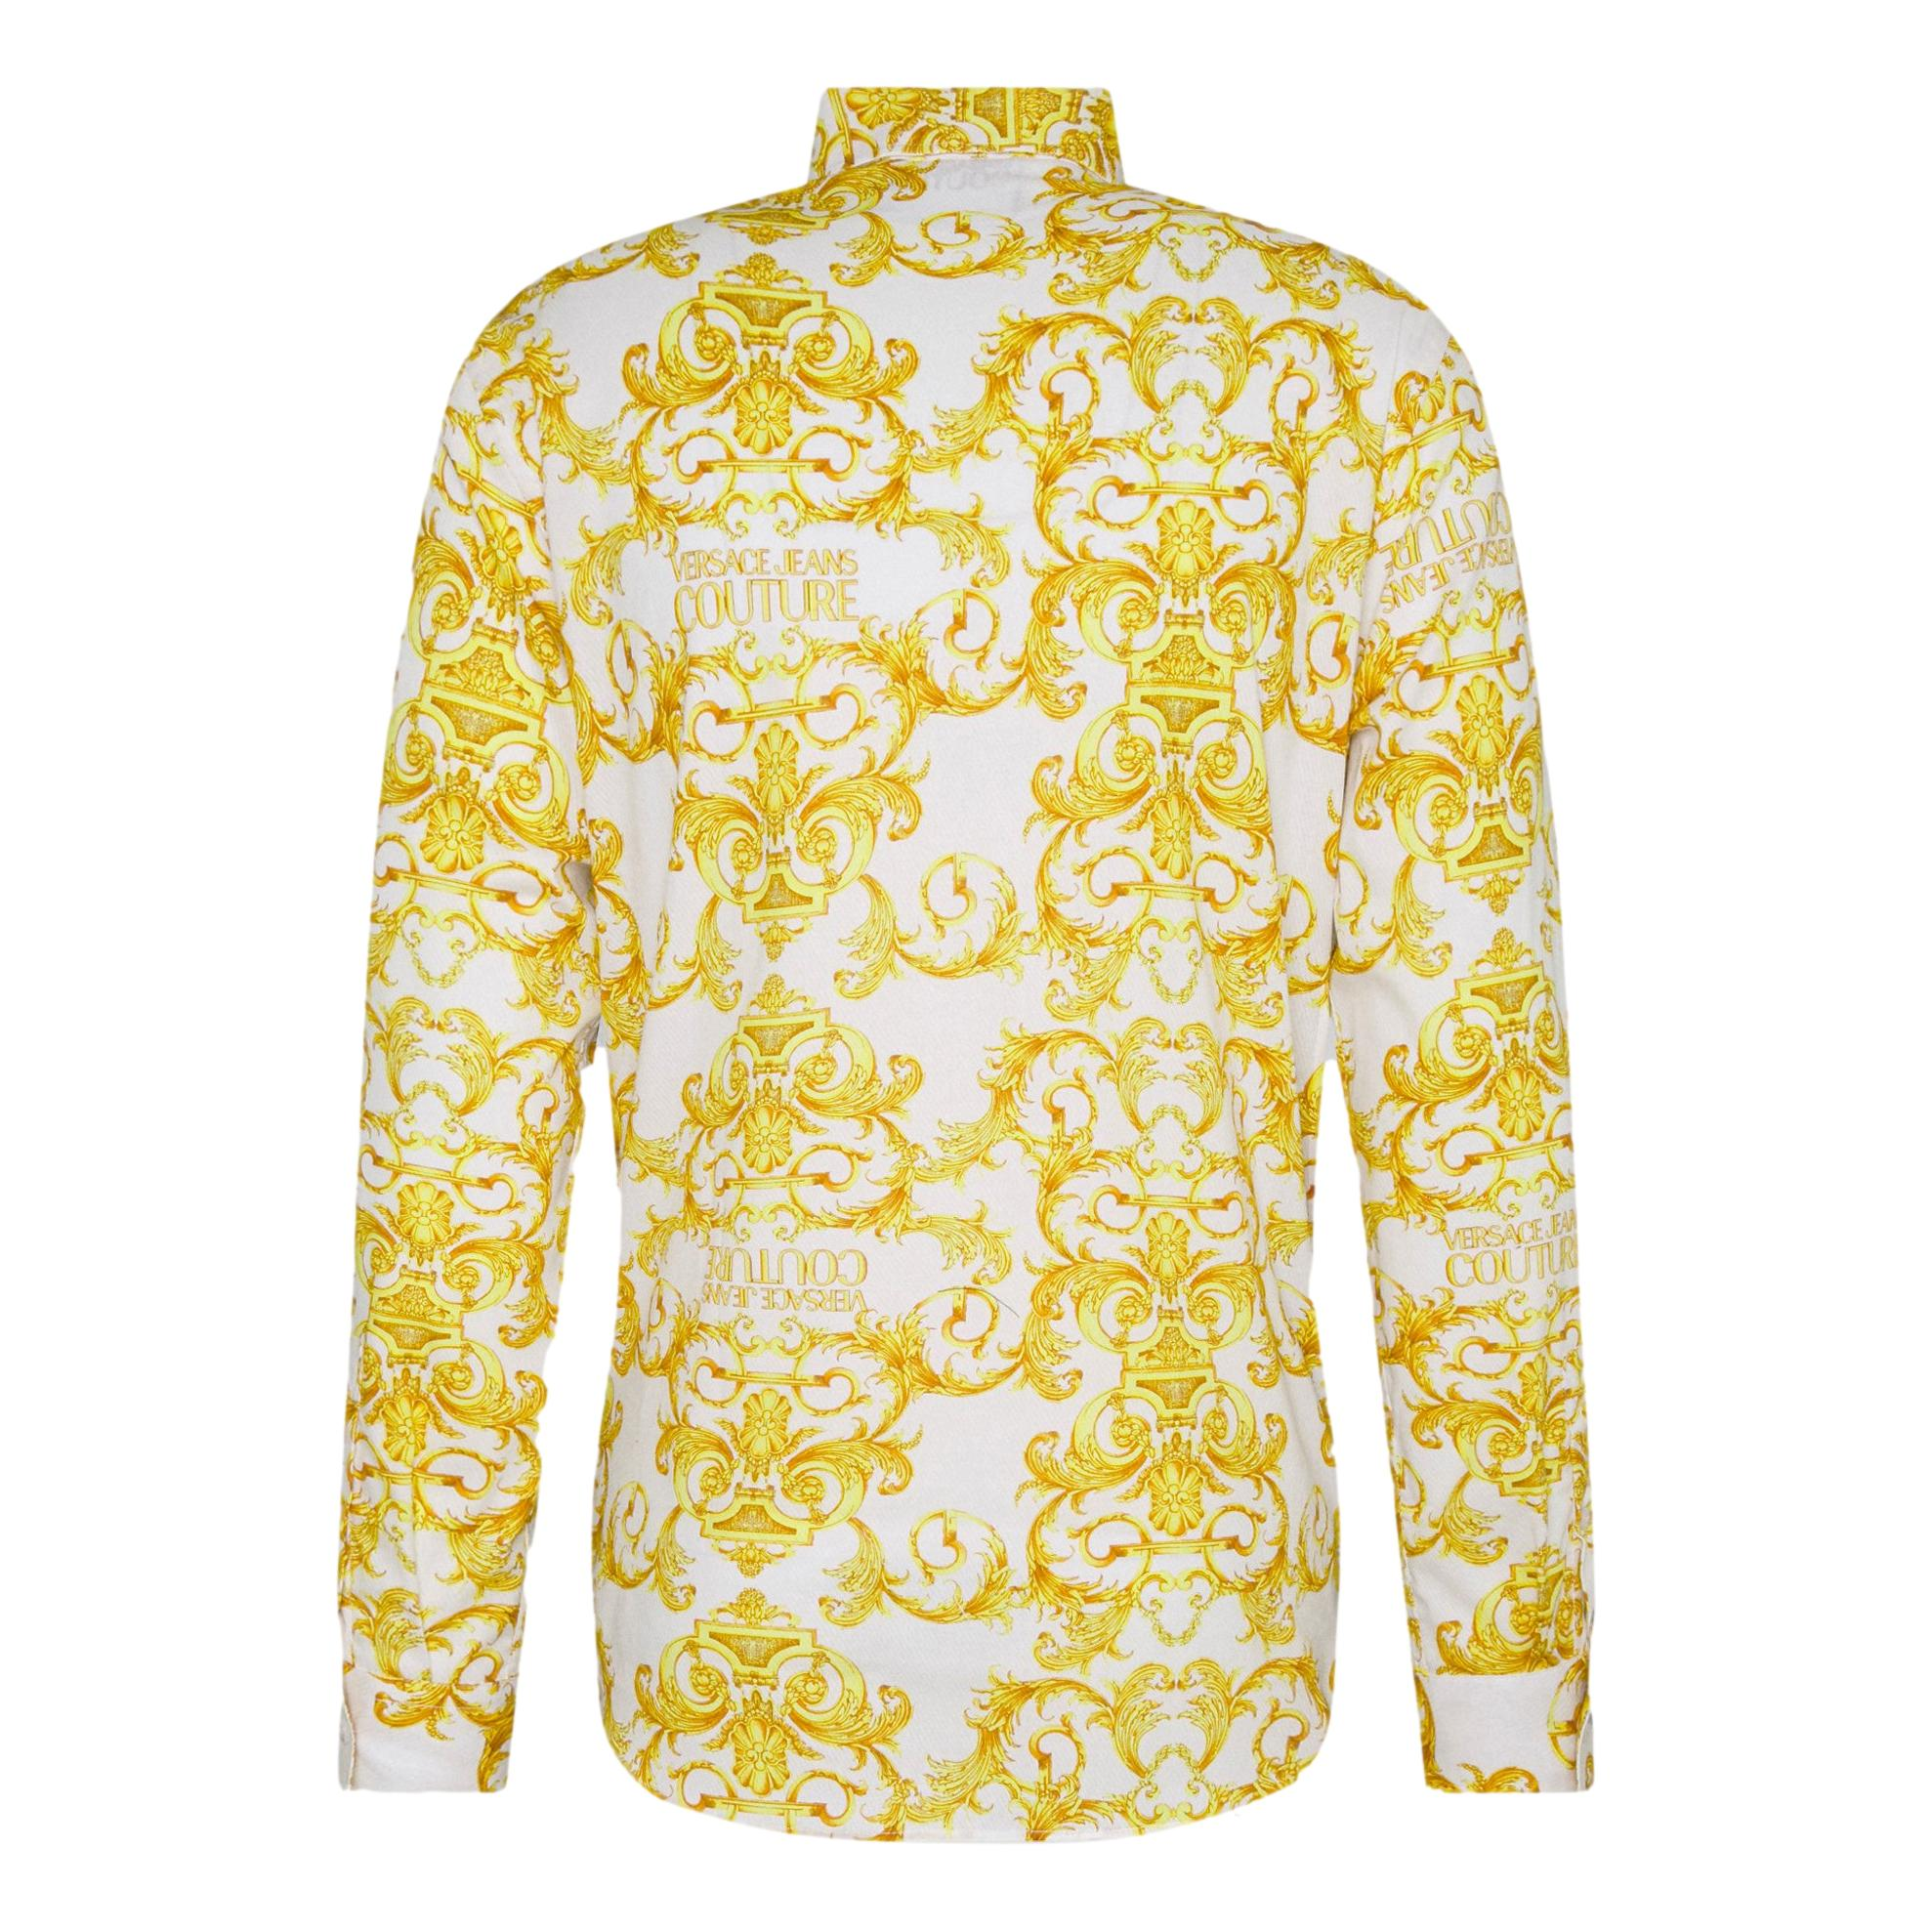 TWILL Barocco-print shirt VERSACE JEANS COUTURE |  | B1GWA6S0  S0152003